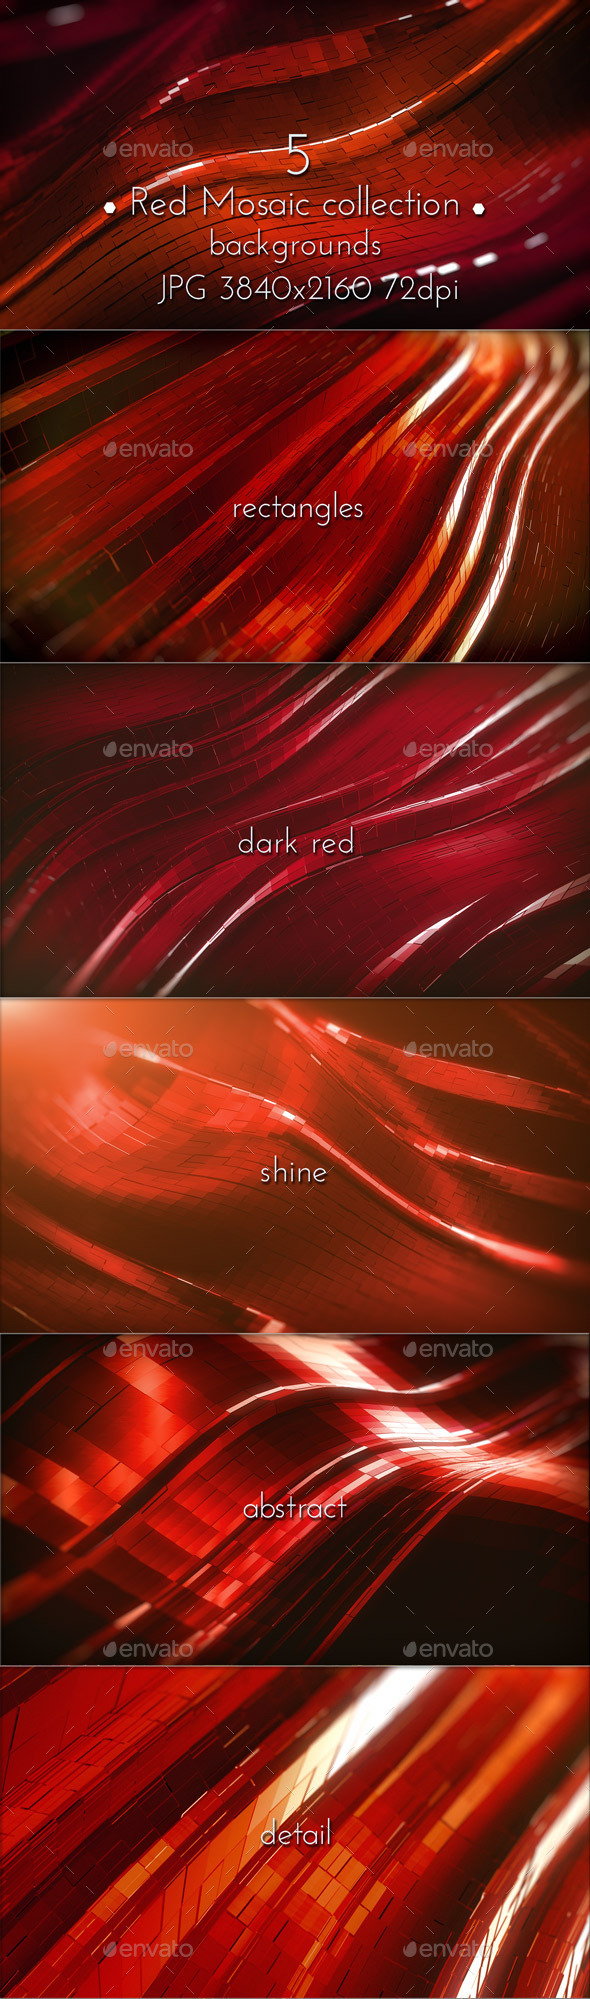 Dark Red Background - Abstract Backgrounds